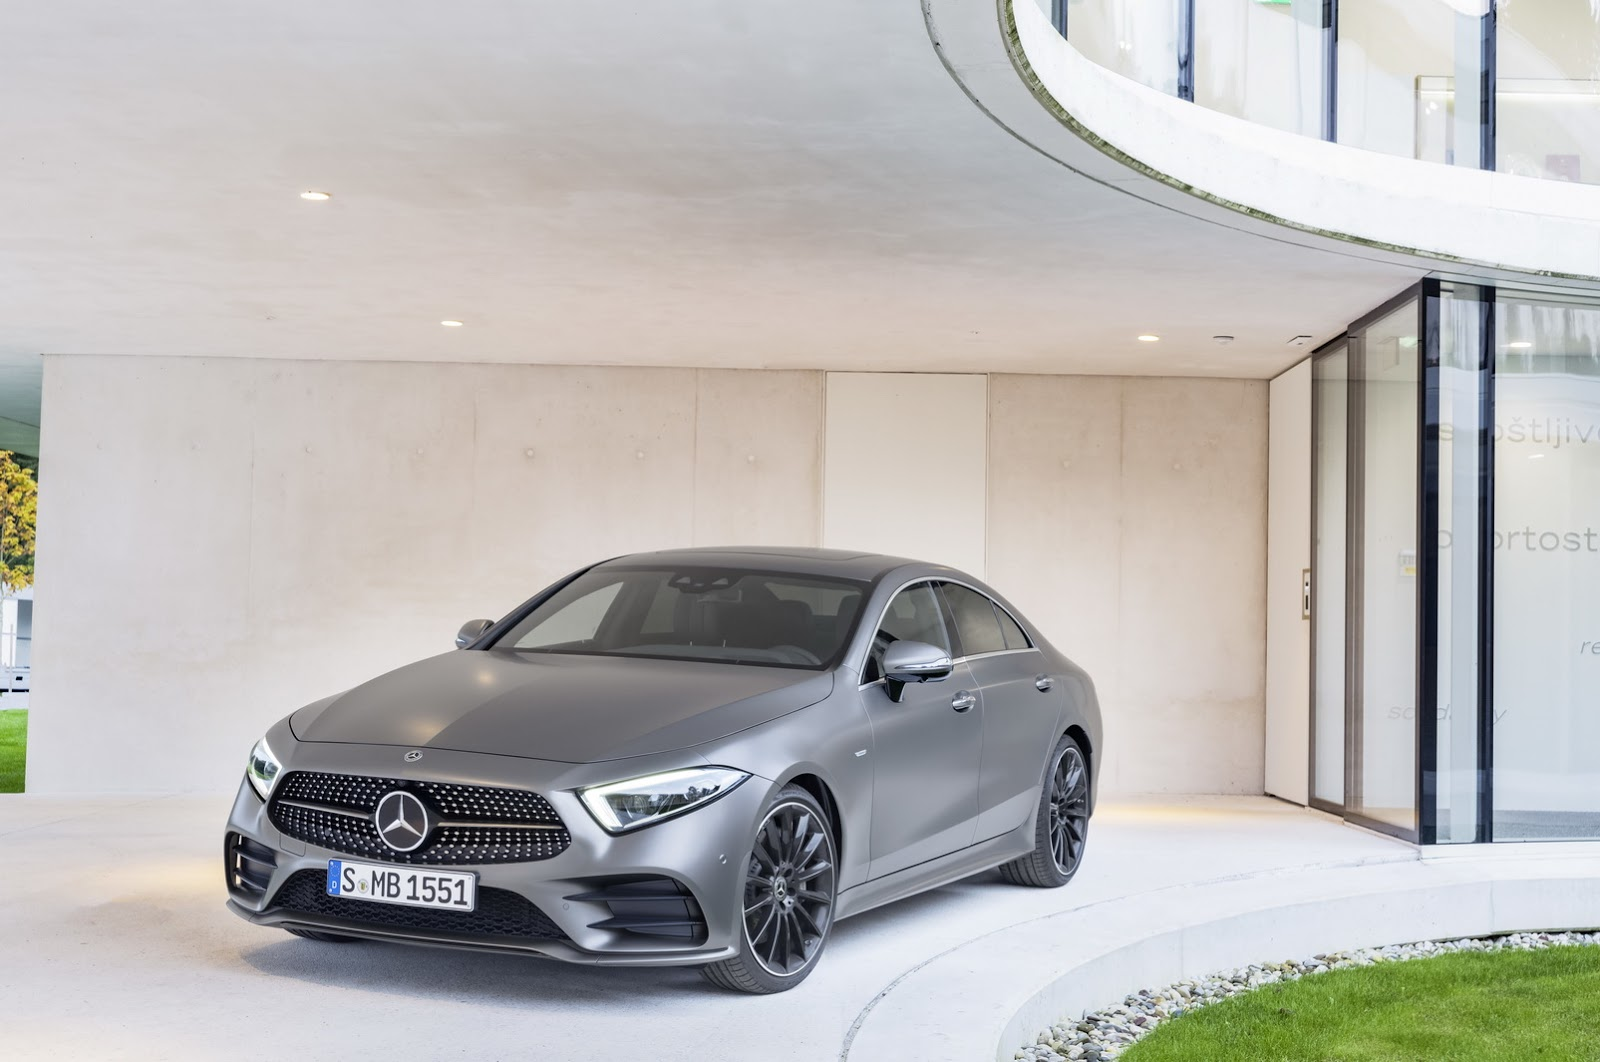 Mercedes Amg Cls 50 With 435 Hp Inline 6 To Debut In Early 2018